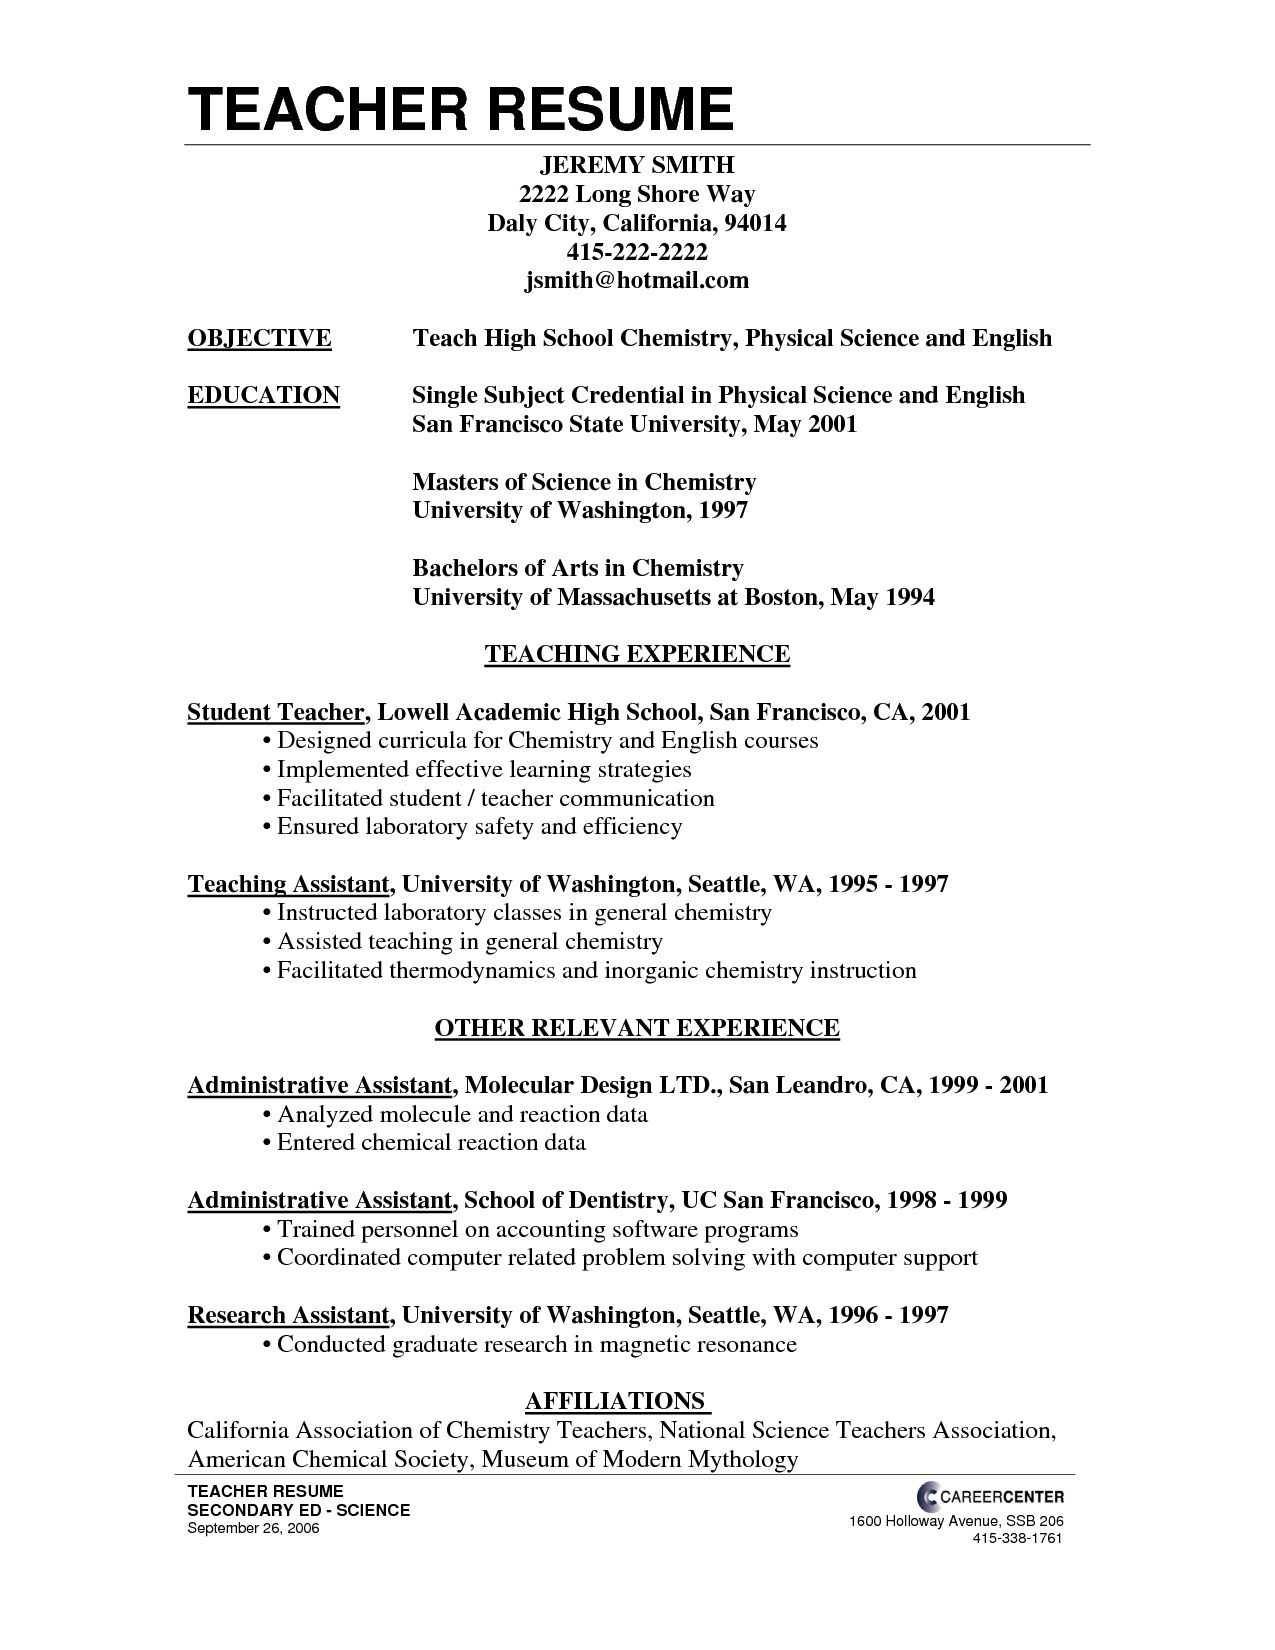 Teacher Resume Samples High School Teacher Resume  Getha Krisha  Pinterest  Teacher